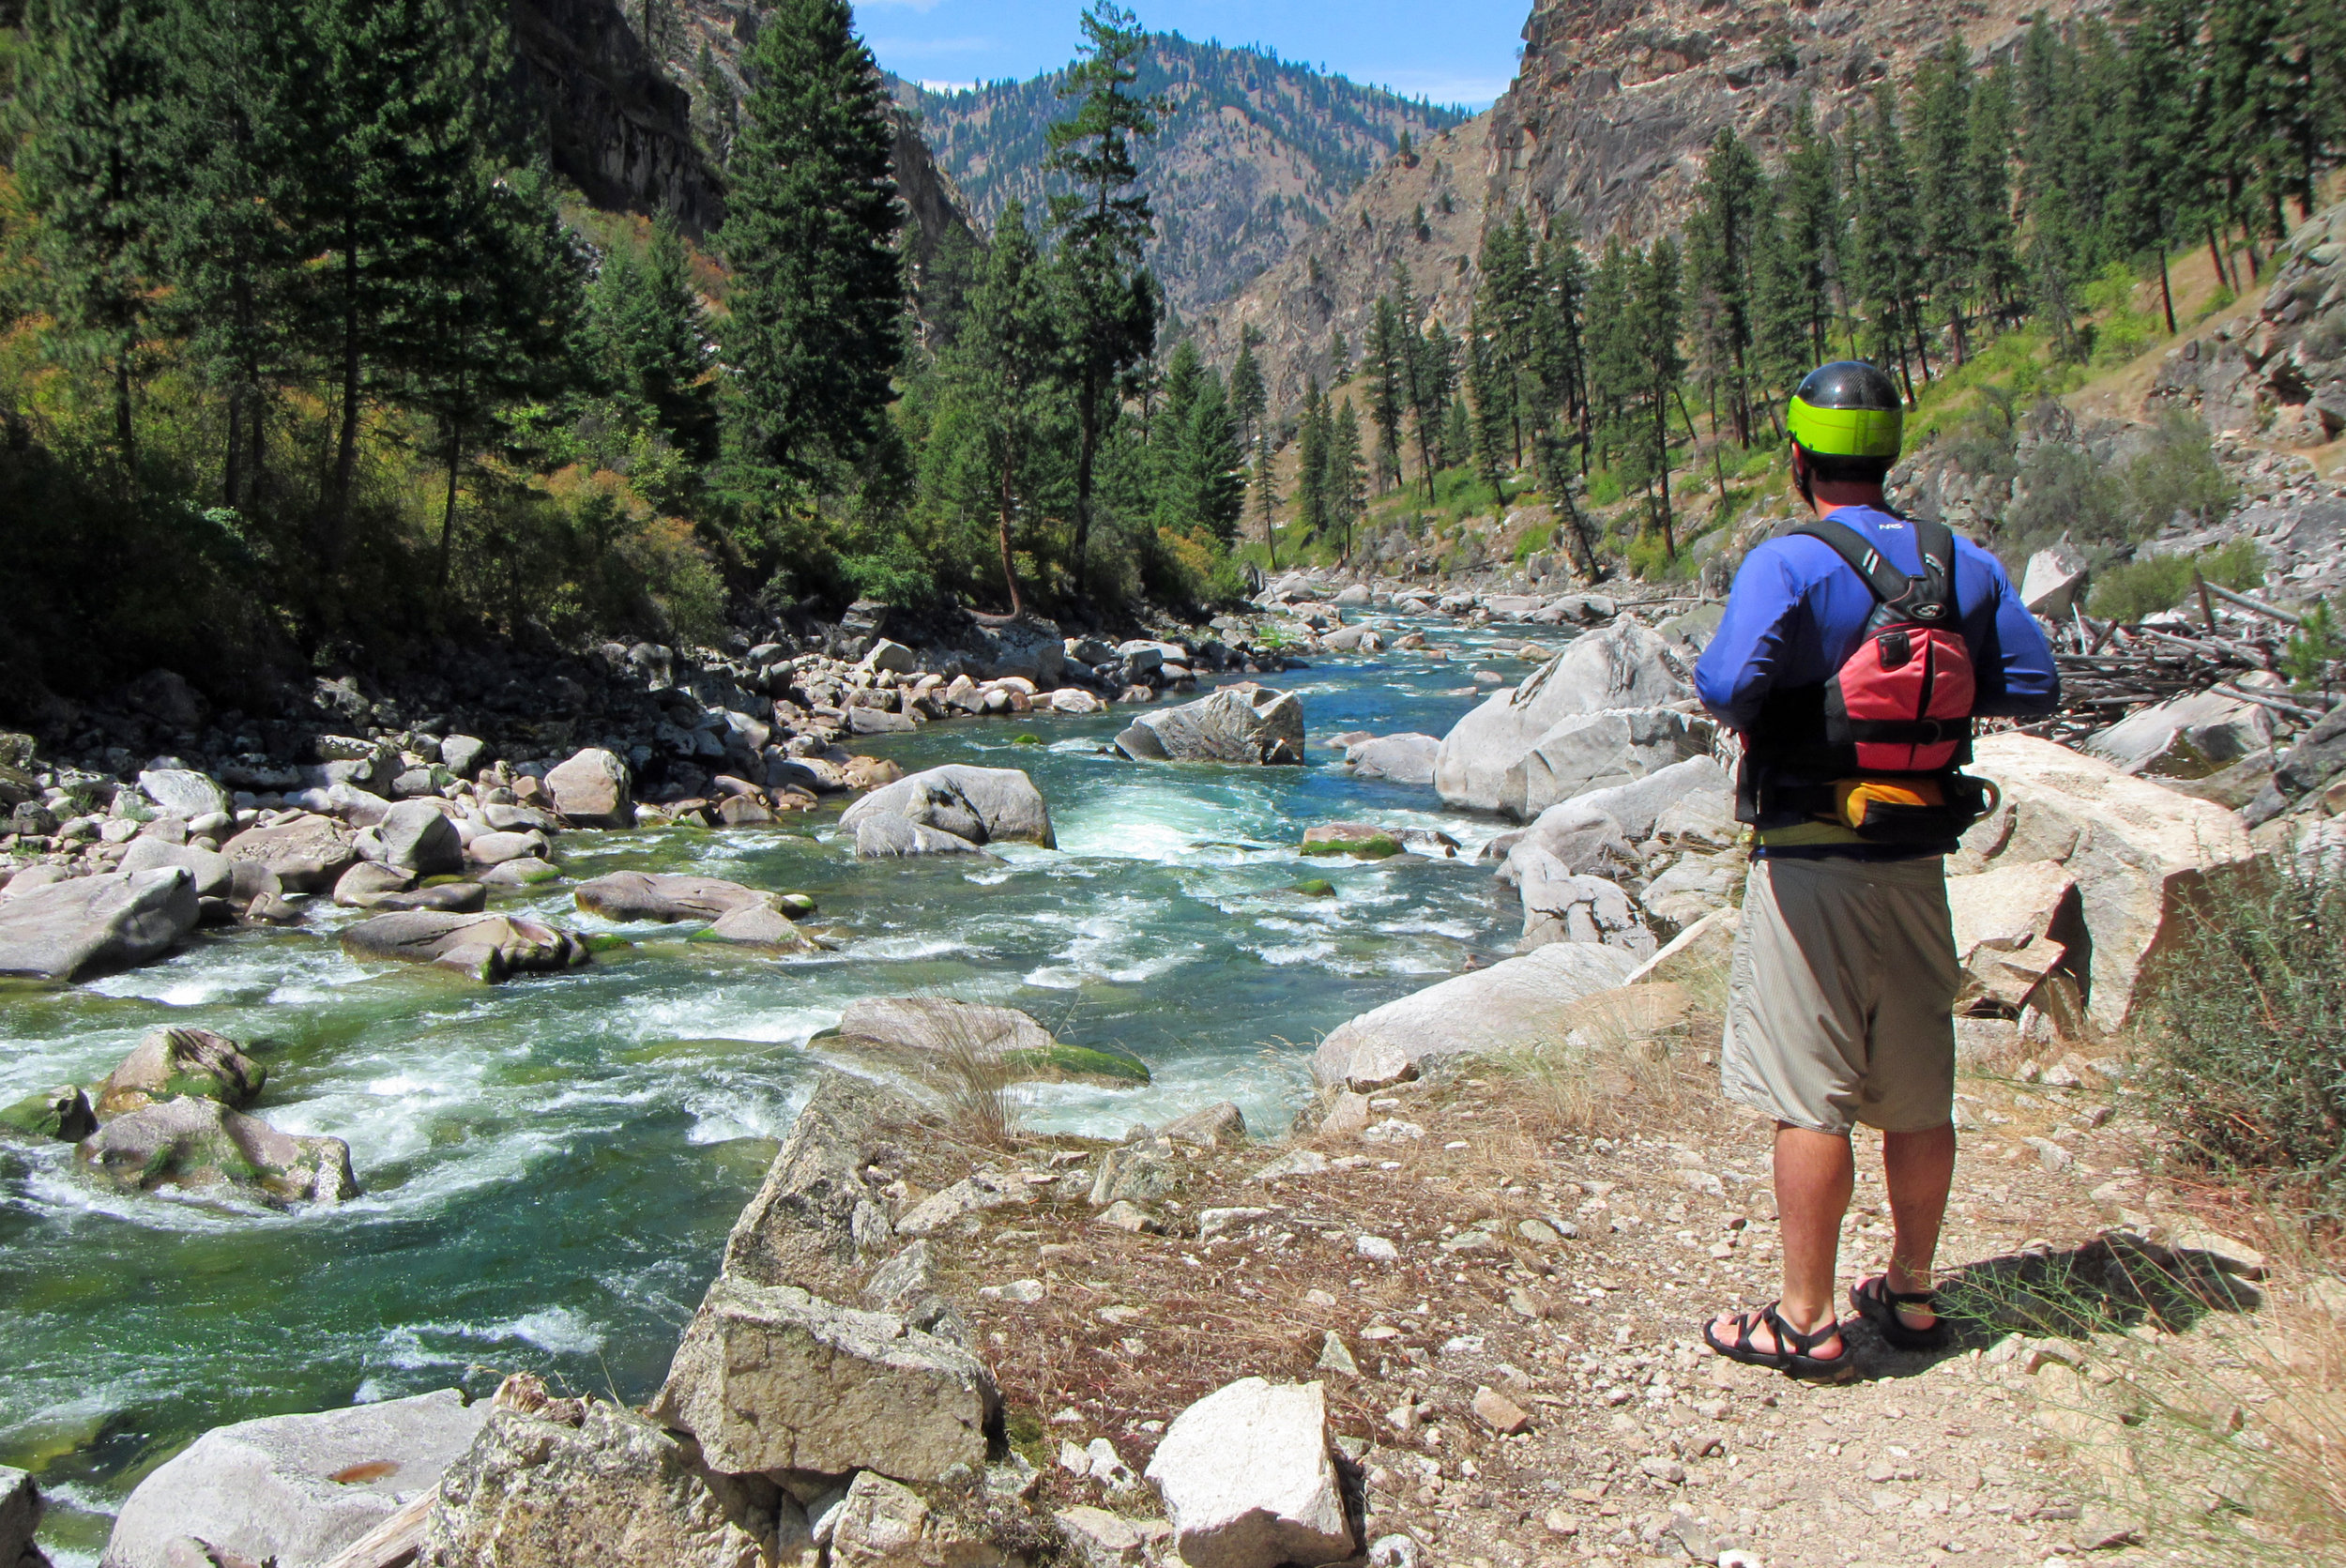 """""""The South Fork is pure, intimate, utterly enchanting. Her emerald waters sparkle in the Idaho sun like a perfectly cut gem, so that even in a state brimming with gorgeous rivers, the South Fork dazzles the eye. The wilderness setting is exquisite: a rugged granite canyon lightly cloaked in open, sun-filled forest. Across this ancient backdrop the South Fork winds and dances with such youthful exuberance and unblemished clarity that, much as you want to stop and drink in her beauty, you can't resist joining in. How could we help falling in love? We're counting the days until we can see the South Fork again.""""   -Bill Cross, Ashland, Ore."""